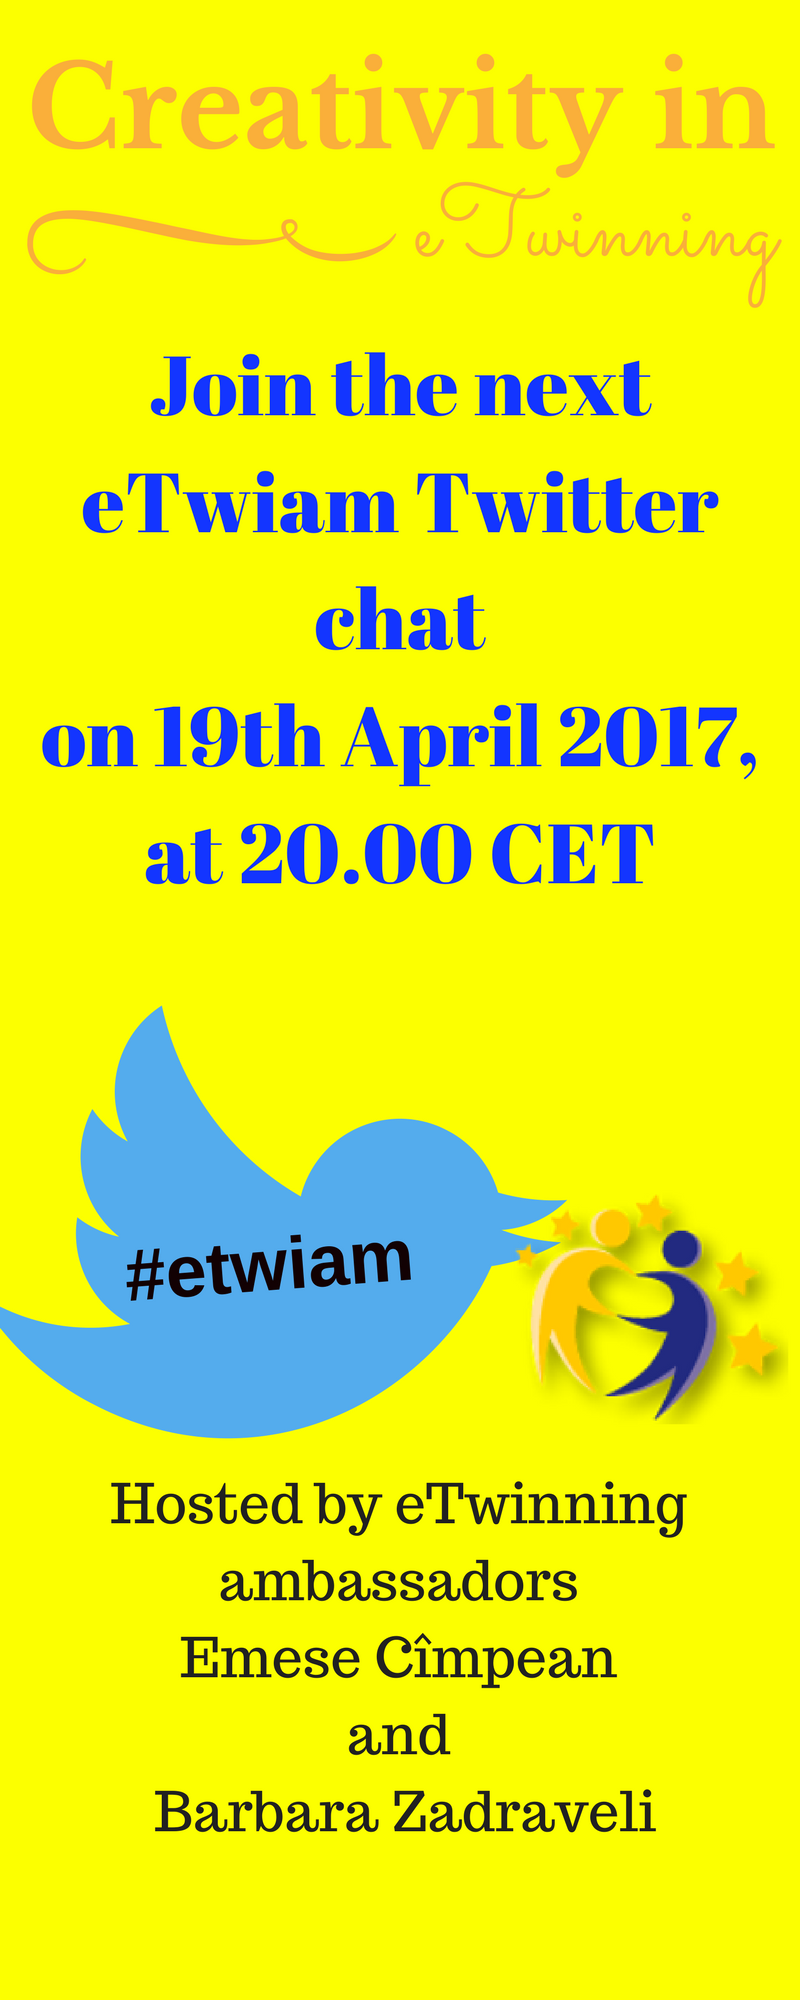 Creativity in eTwinning, on 19 April, at 20.00 CET. Join us! #etwiam https://t.co/QRo3W2EJAh